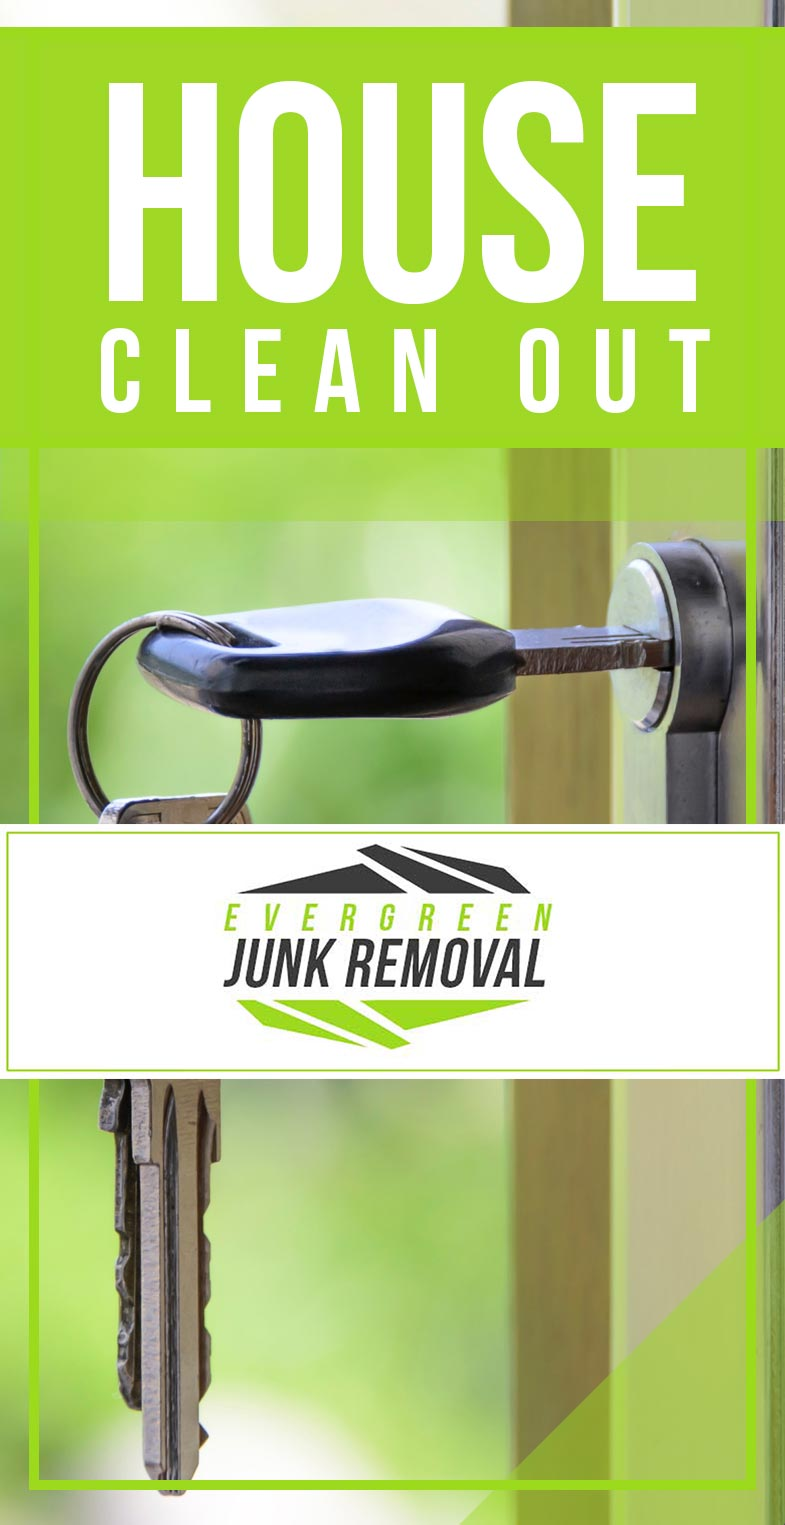 Junk Removal Lake Worth House Clean Out